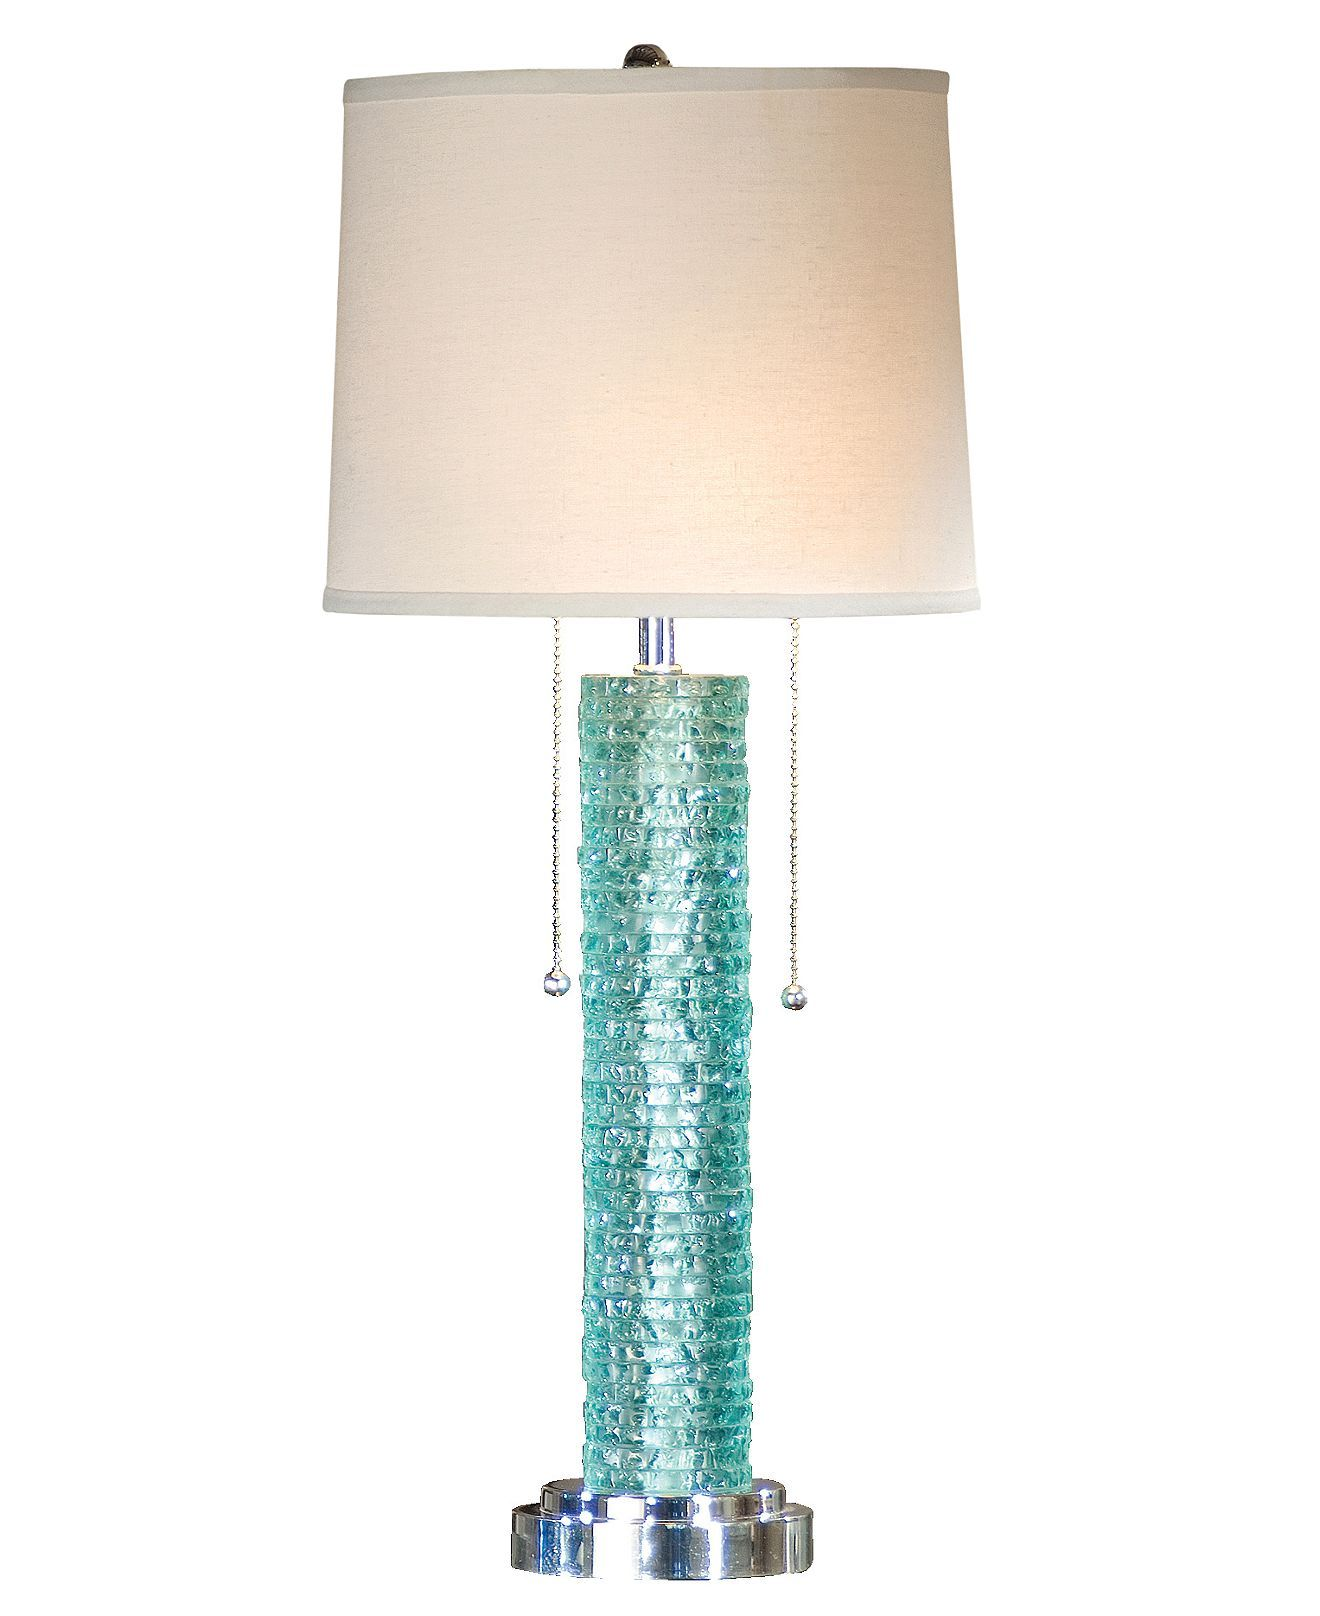 of lamps ec gb handblown lighting glass blue lamp f sale pair at org furniture aqua for id bottle table